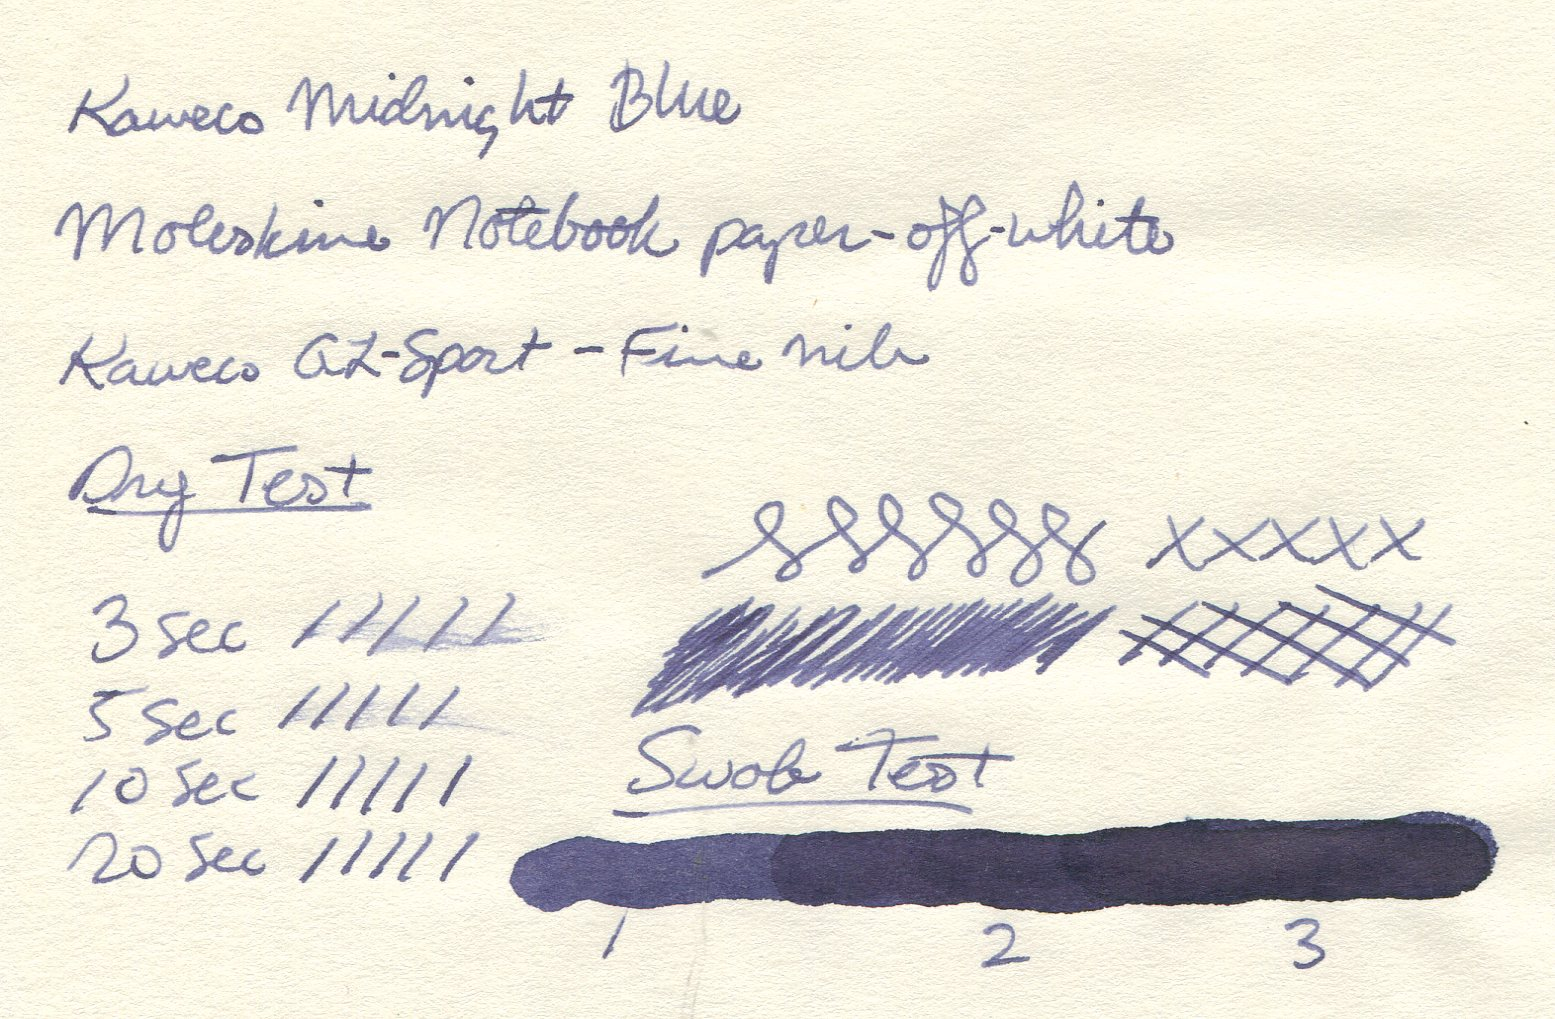 Kaweco-Midnight-Blue-Moleskine-052